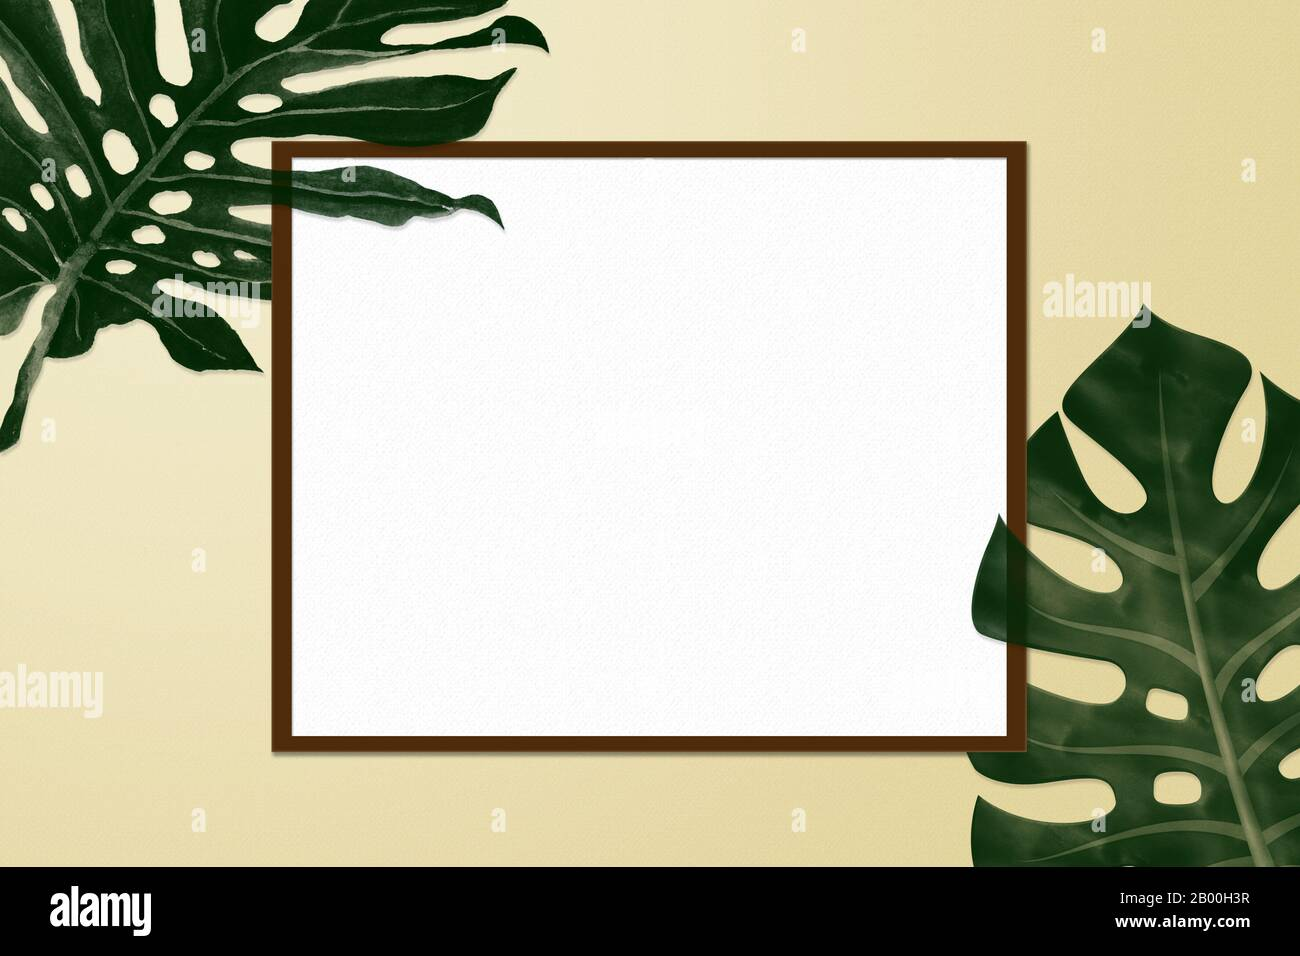 Simple Creative Nature Frame Made Of Summer Tropical Palm And Fern Leaves On Yellow Pastel Background Top View Stock Photo Alamy Inspired by nature and wildlife. https www alamy com simple creative nature frame made of summer tropical palm and fern leaves on yellow pastel background top view image344220795 html